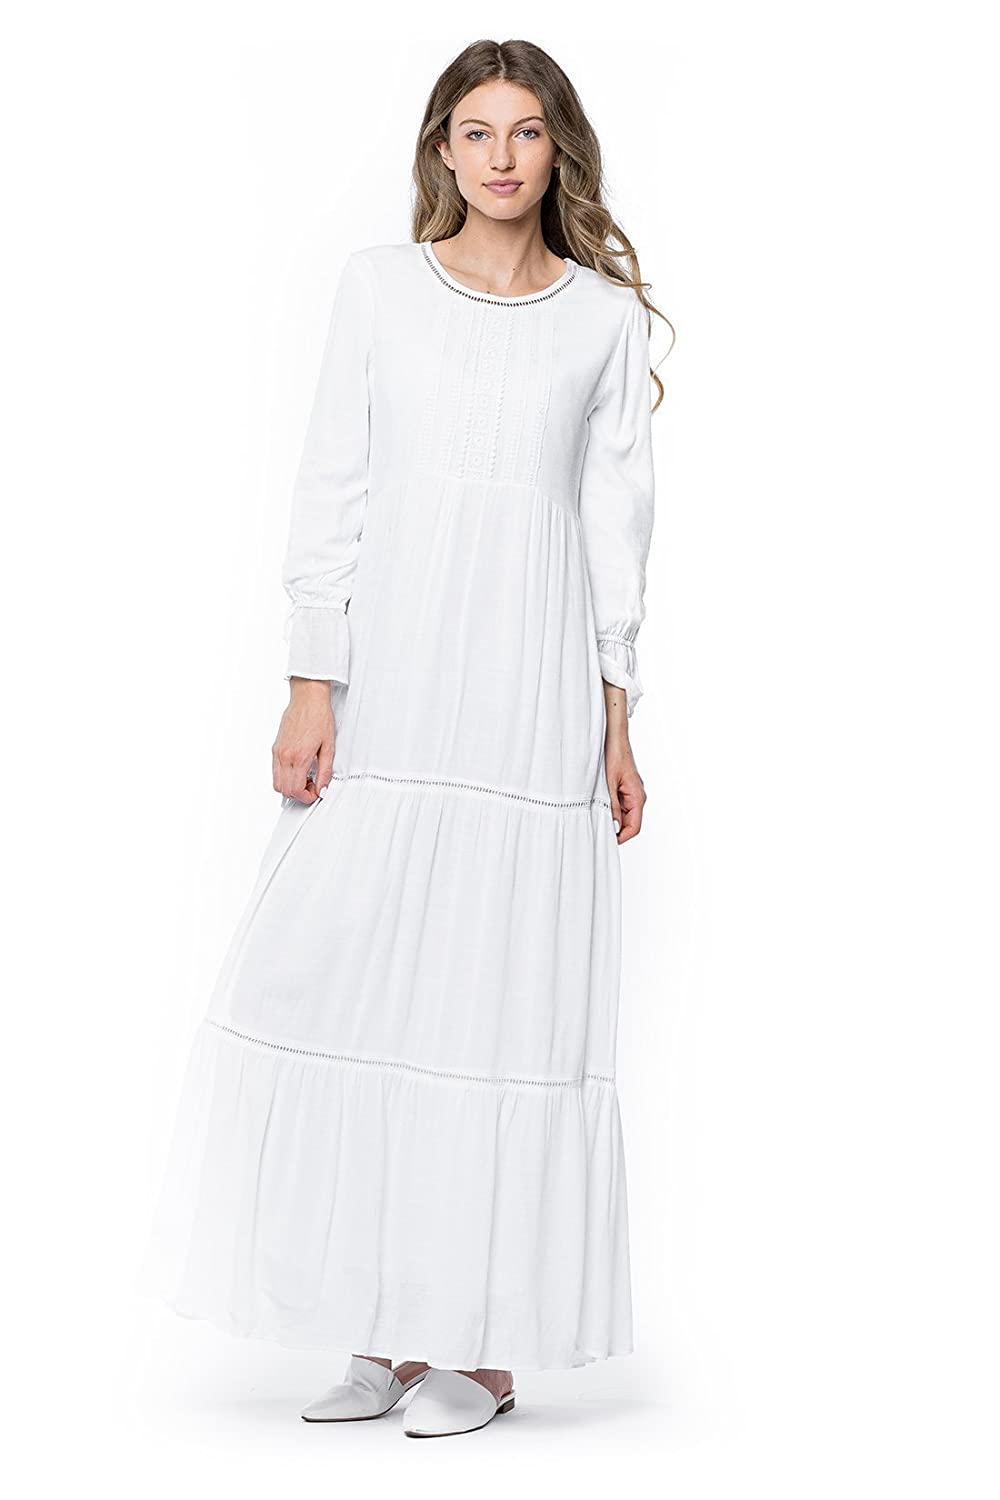 Cottagecore Dresses Aesthetic, Granny, Vintage ModWhite White Camellia Dress $94.00 AT vintagedancer.com